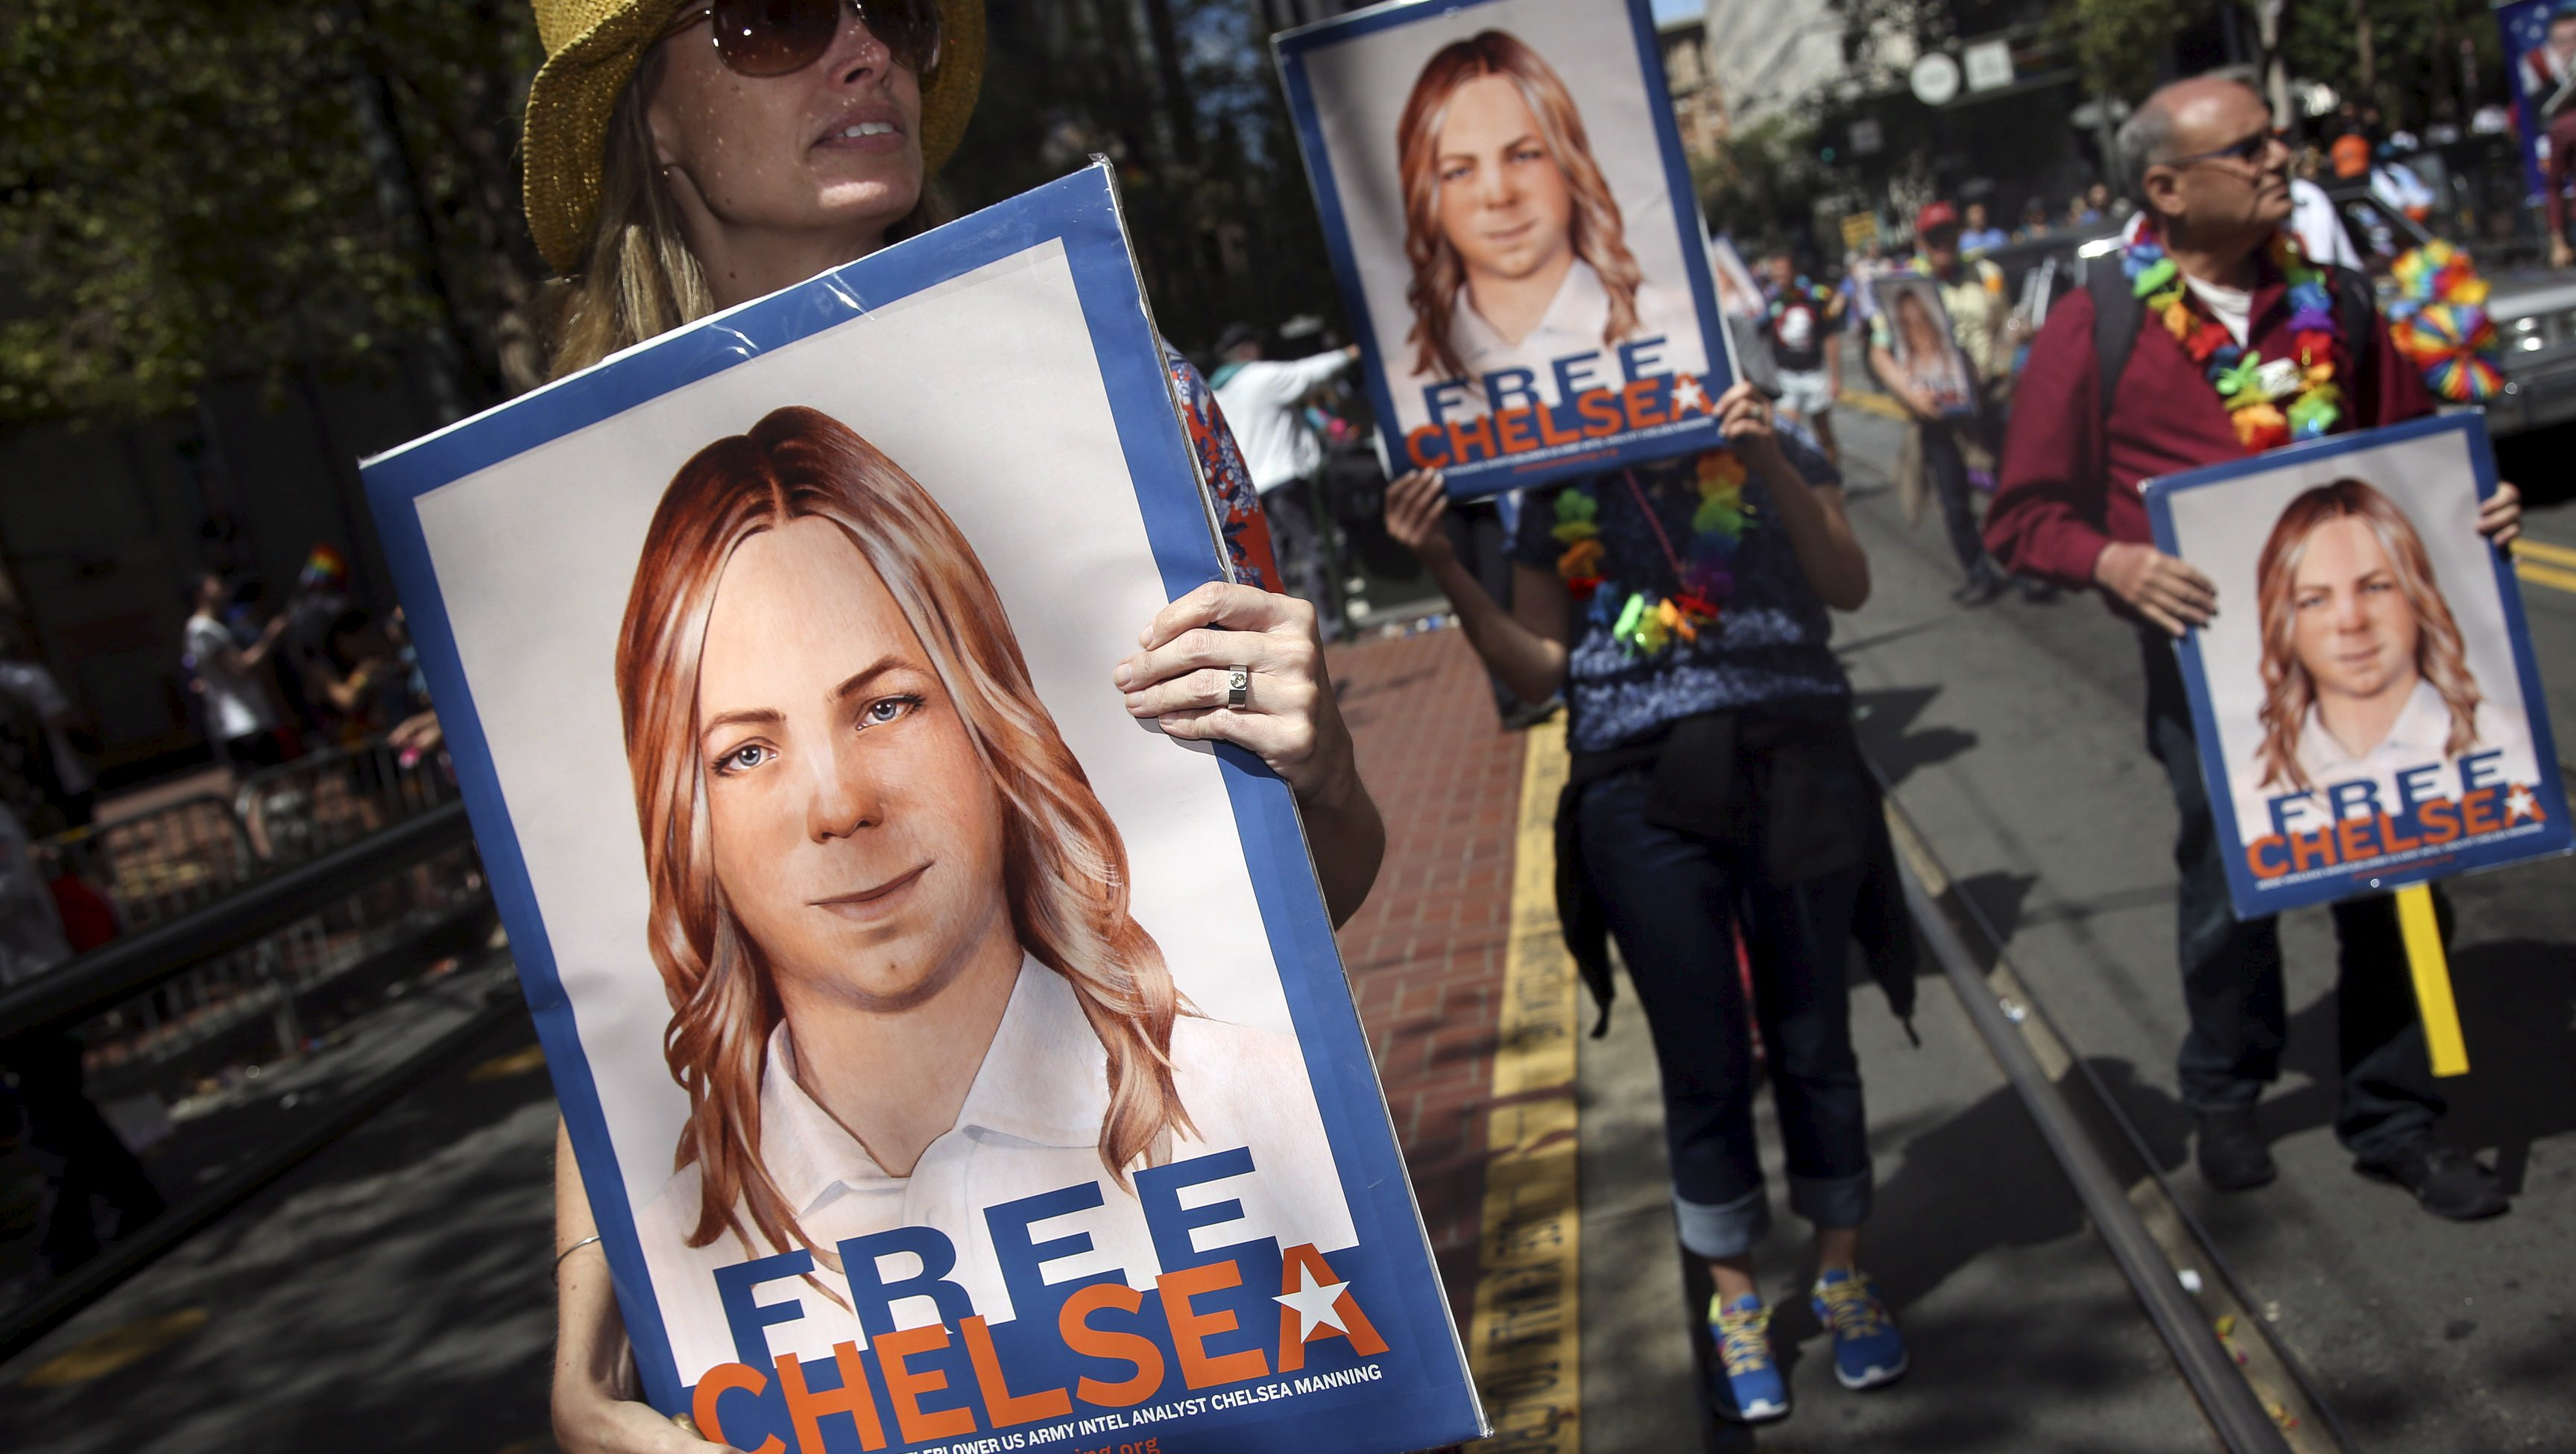 People hold signs calling for the release of imprisoned wikileaks whistleblower Chelsea Manning while marching in a gay pride parade in San Francisco, California June 28, 2015. Manning has appealed to an Army court to overturn her court-martial conviction, a court filing released on Thursday said.  REUTERS/Elijah Nouvelage/File Photo - RTSF29L